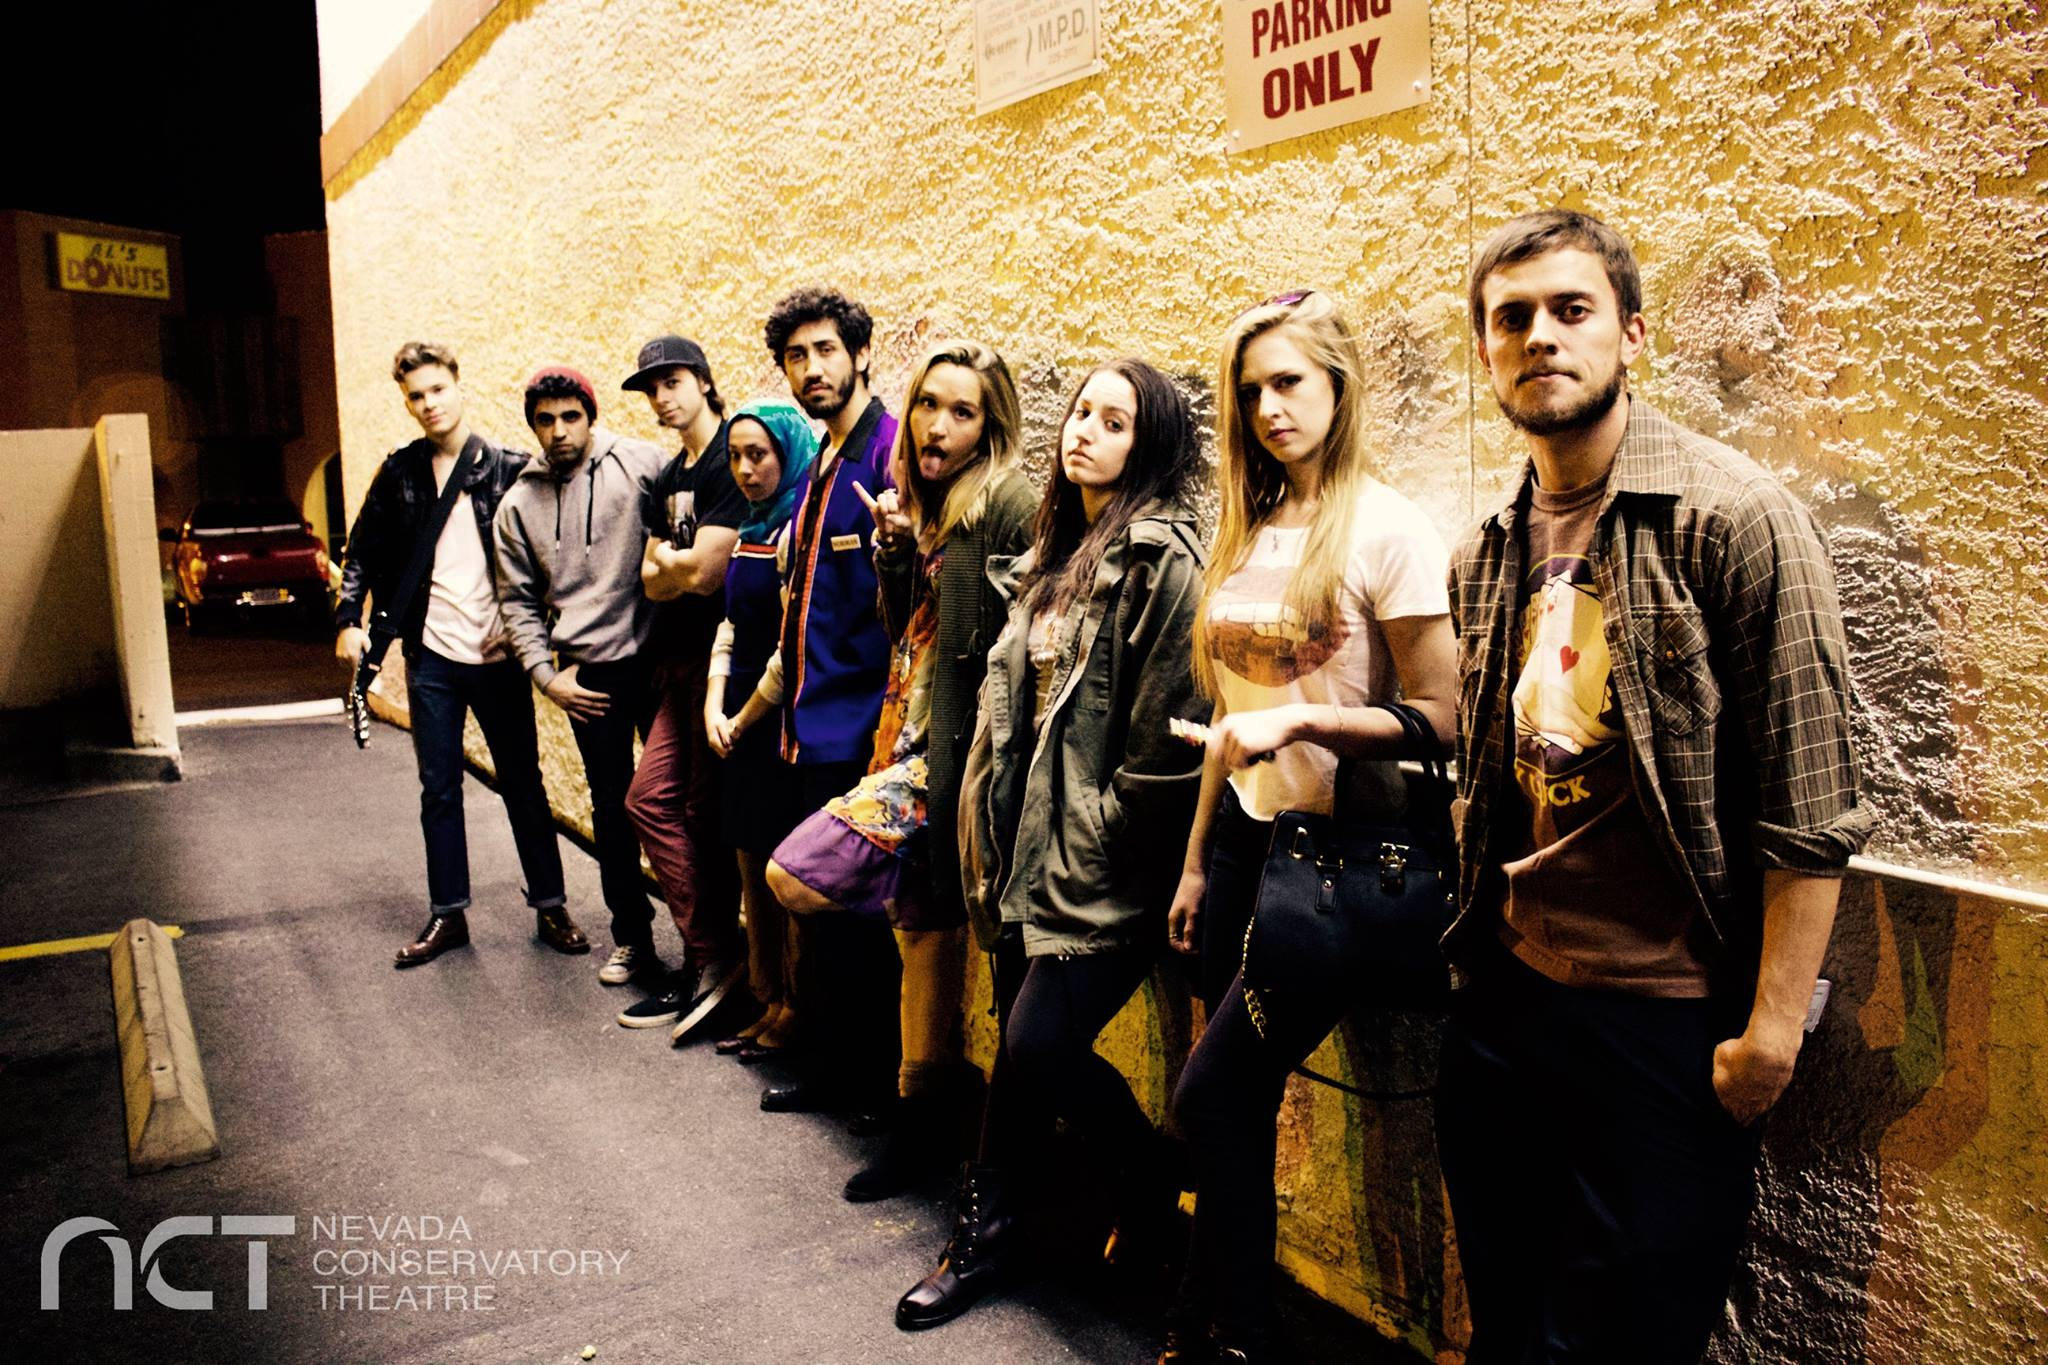 Group of rebellious-looking students leaning against a beige wall onstage